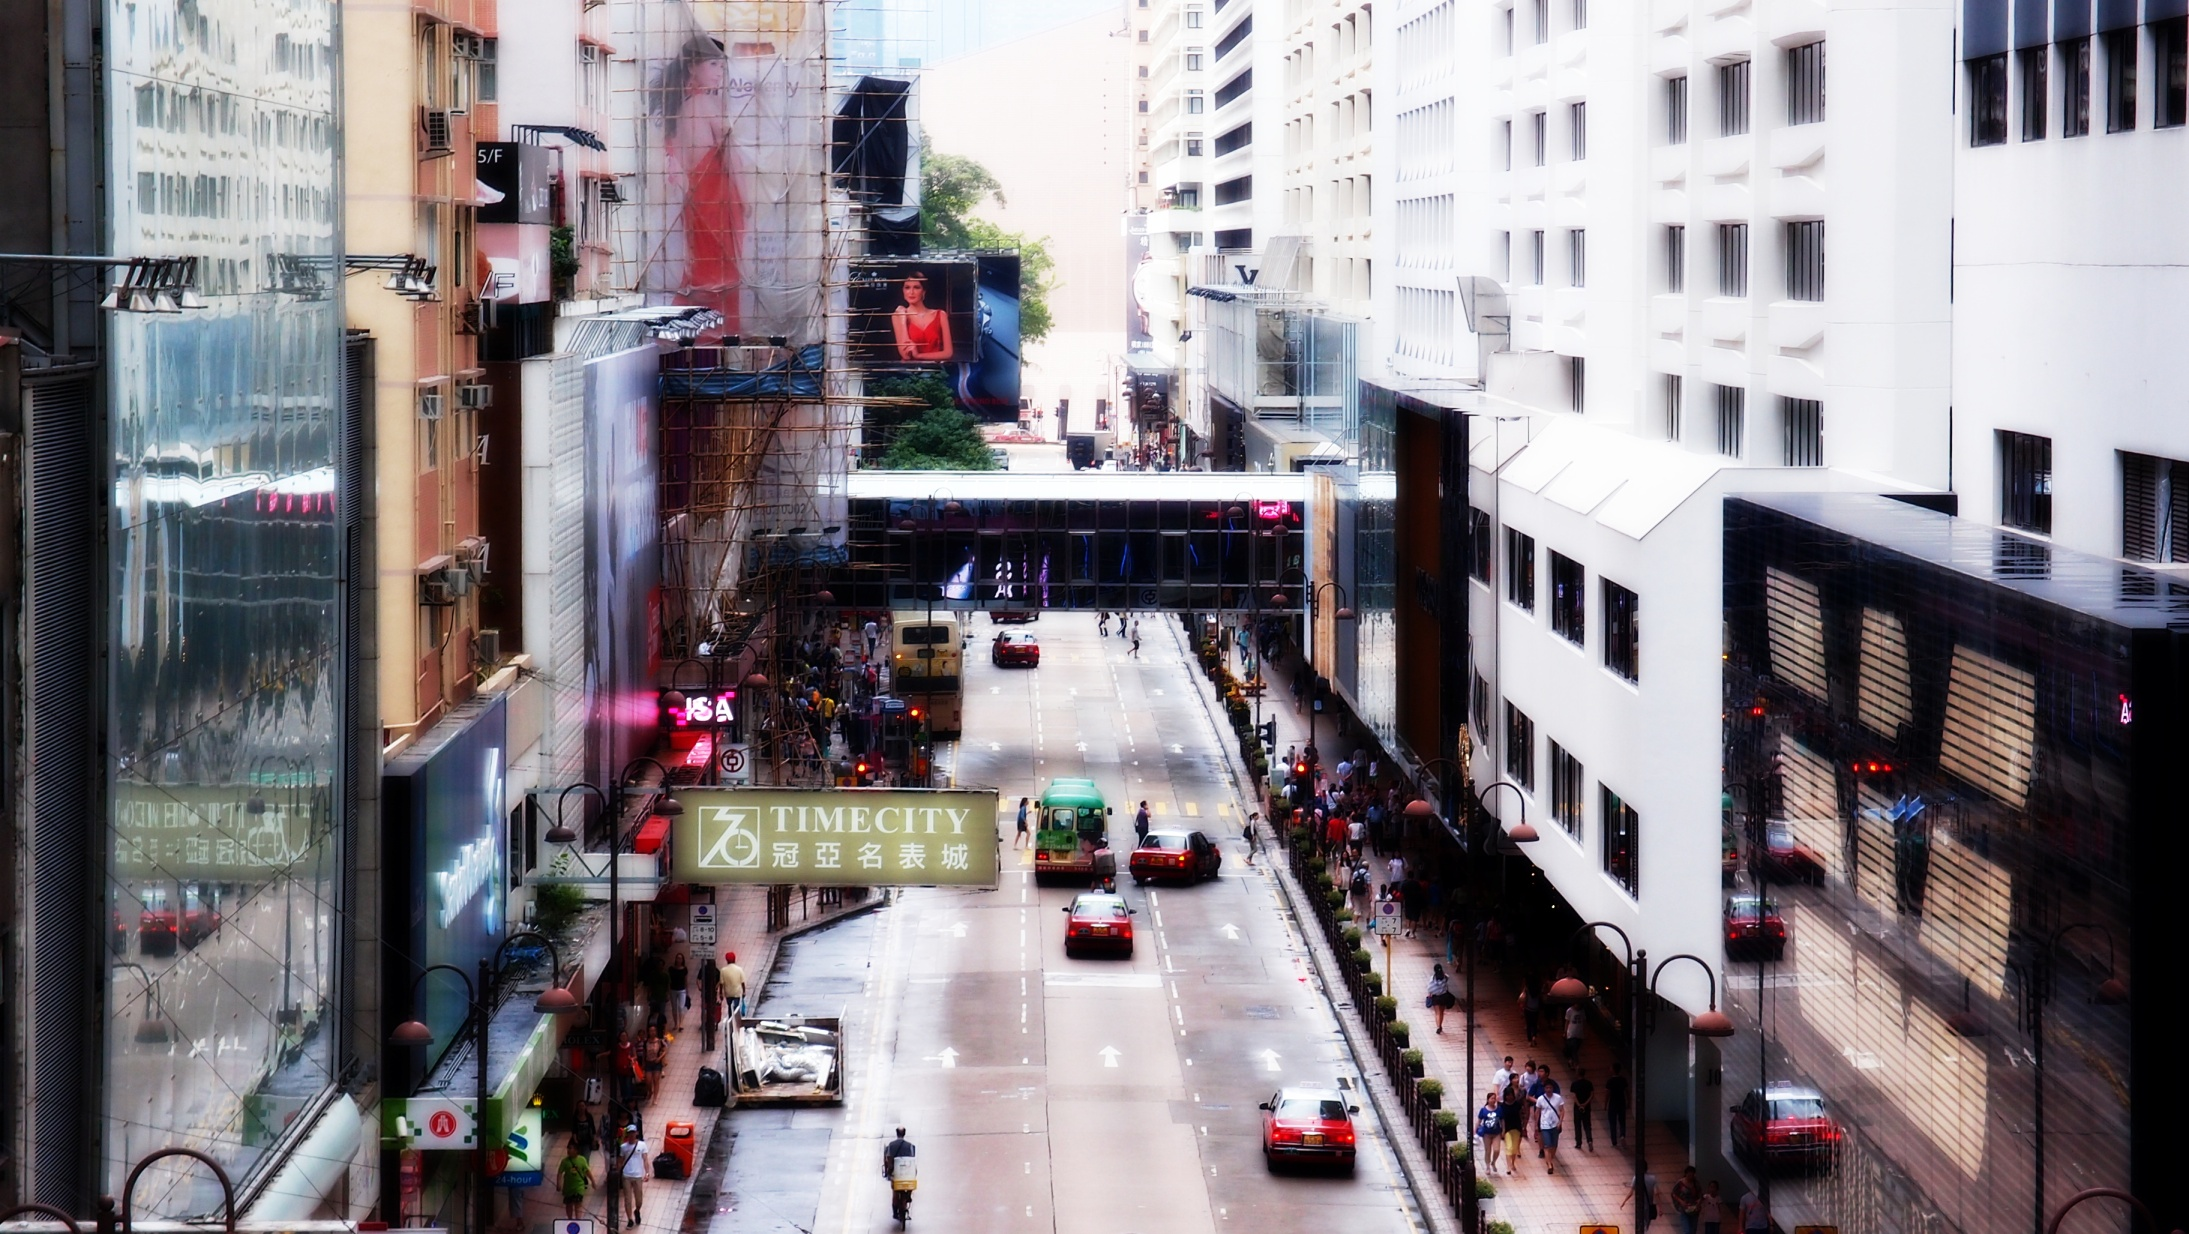 The most famous shopping street in Hong Kong